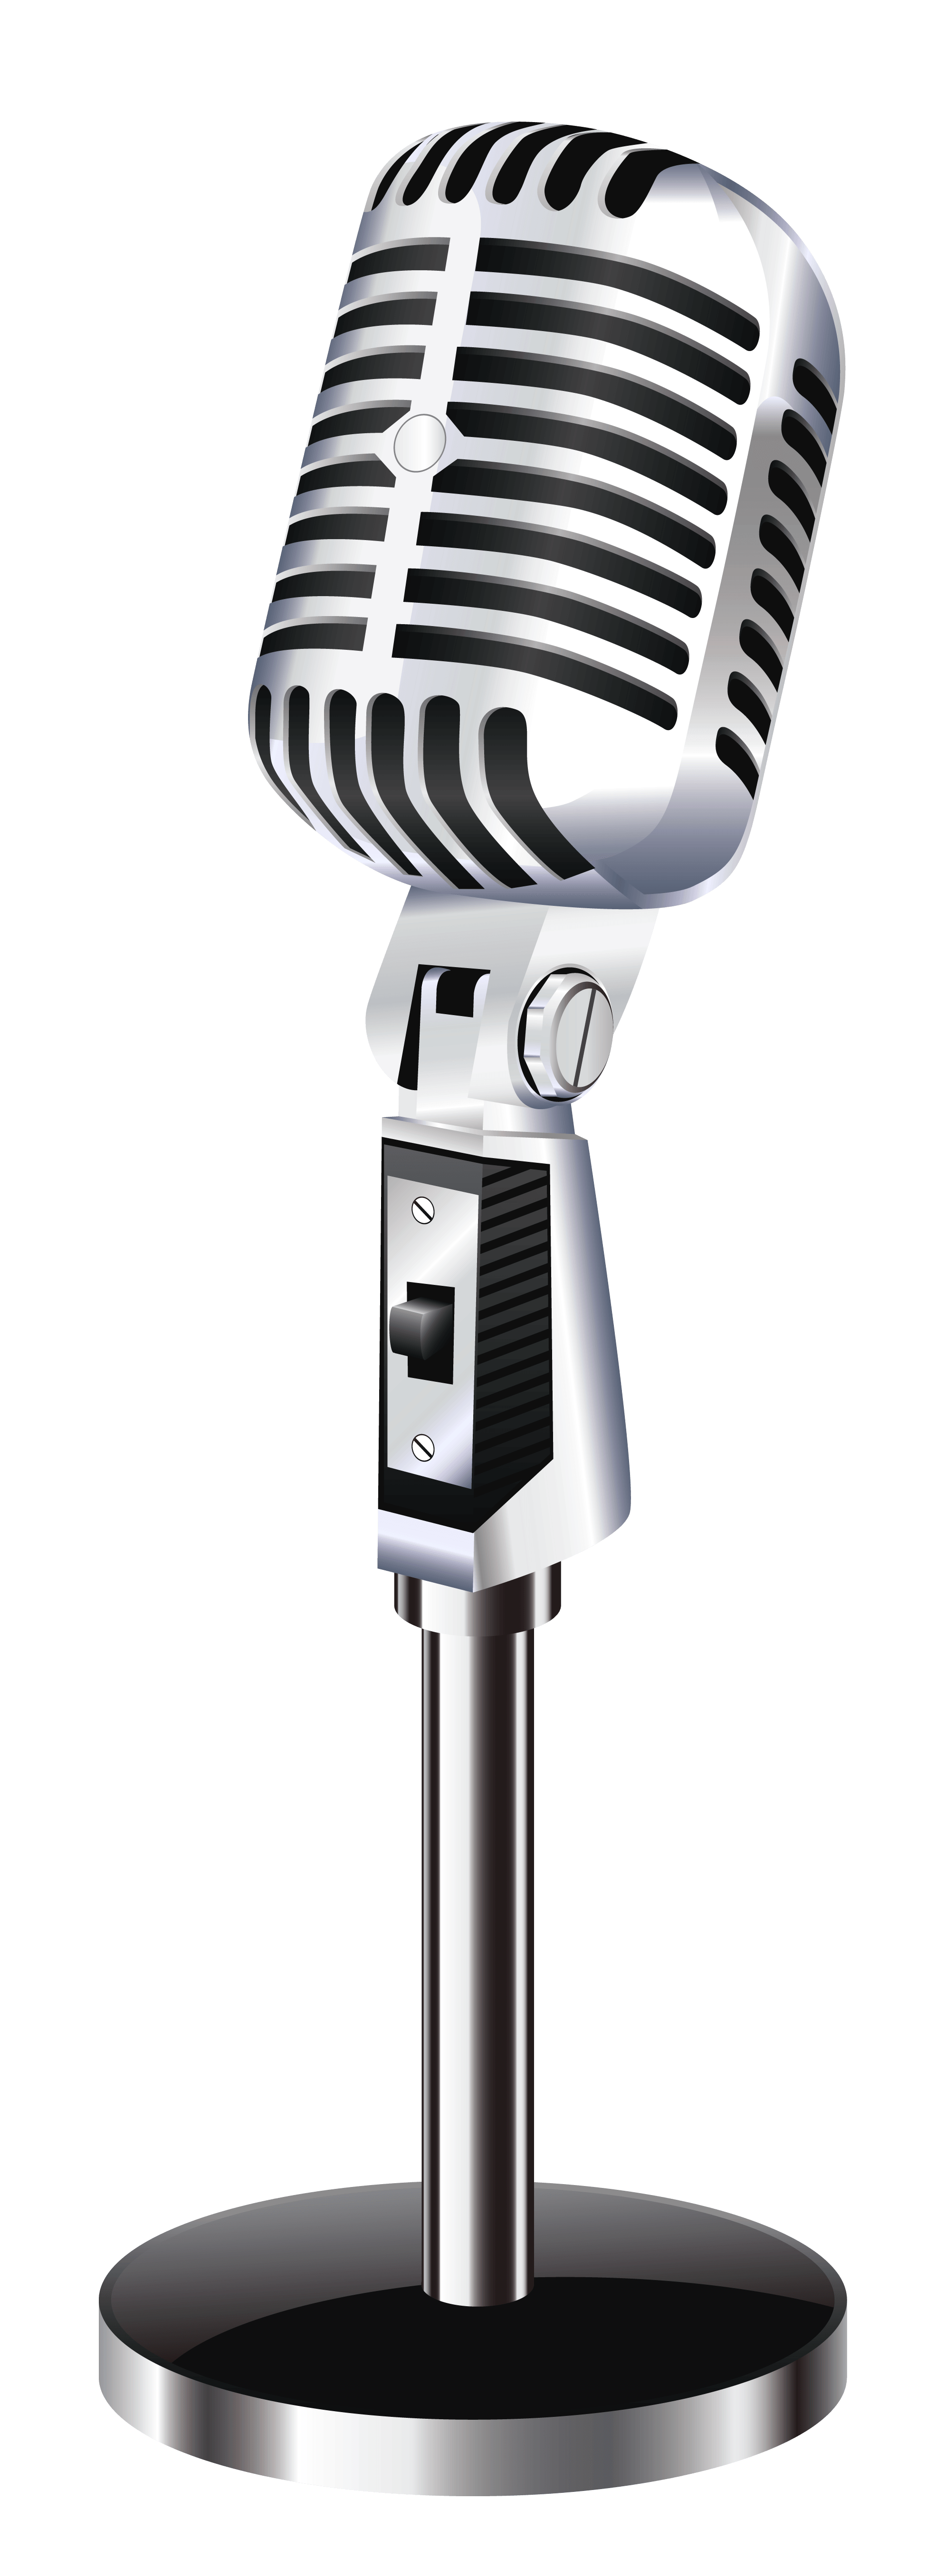 Microphone clipart transparent background. Png images free download